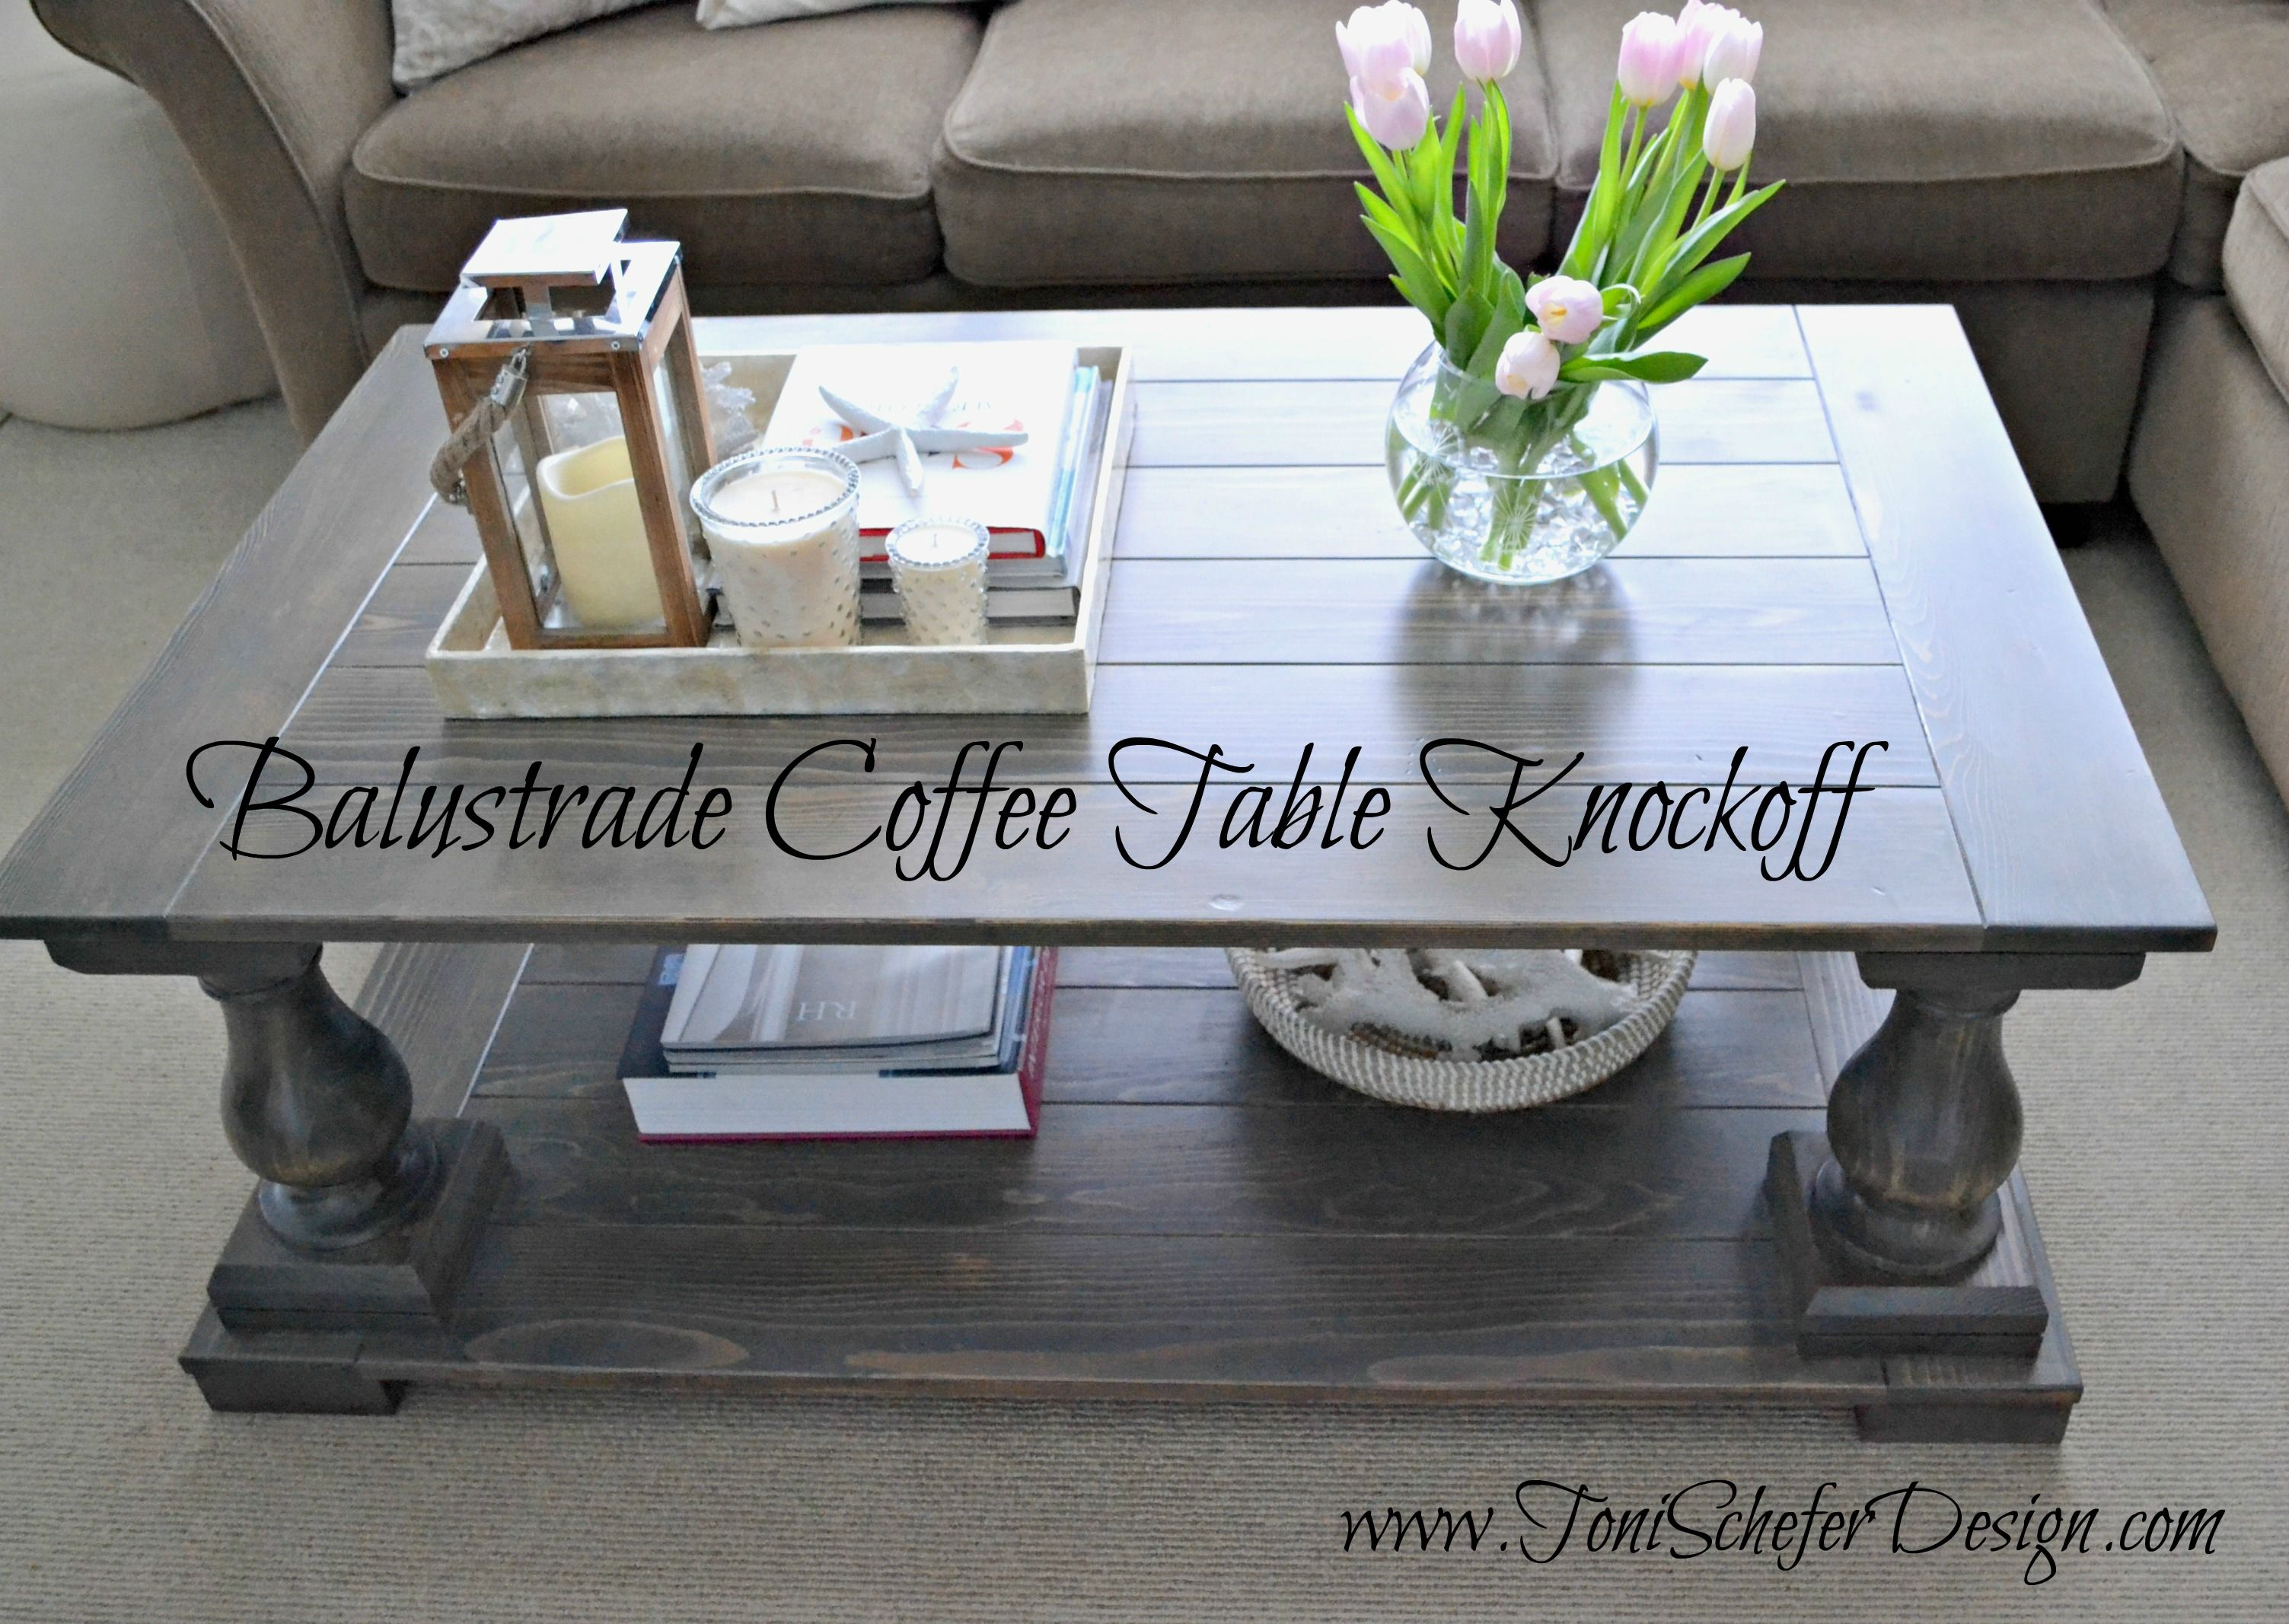 Restoration Hardware Knockoff Balustrade Coffee Table Minwax dark